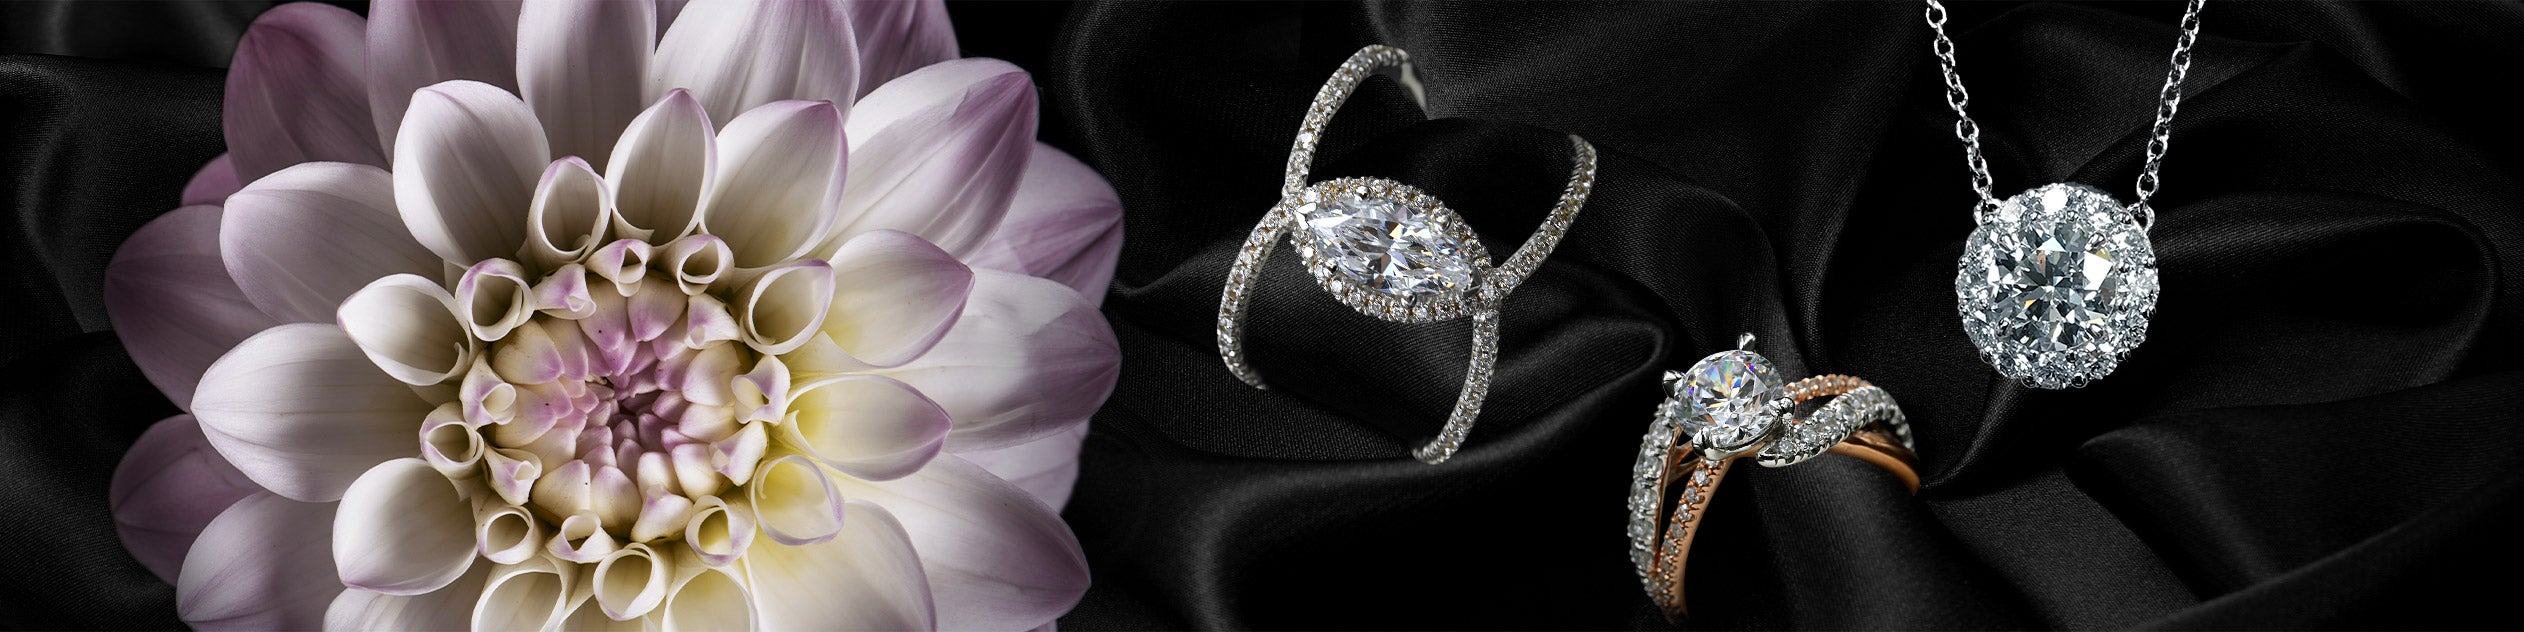 Give new life to old, cherished gemstones